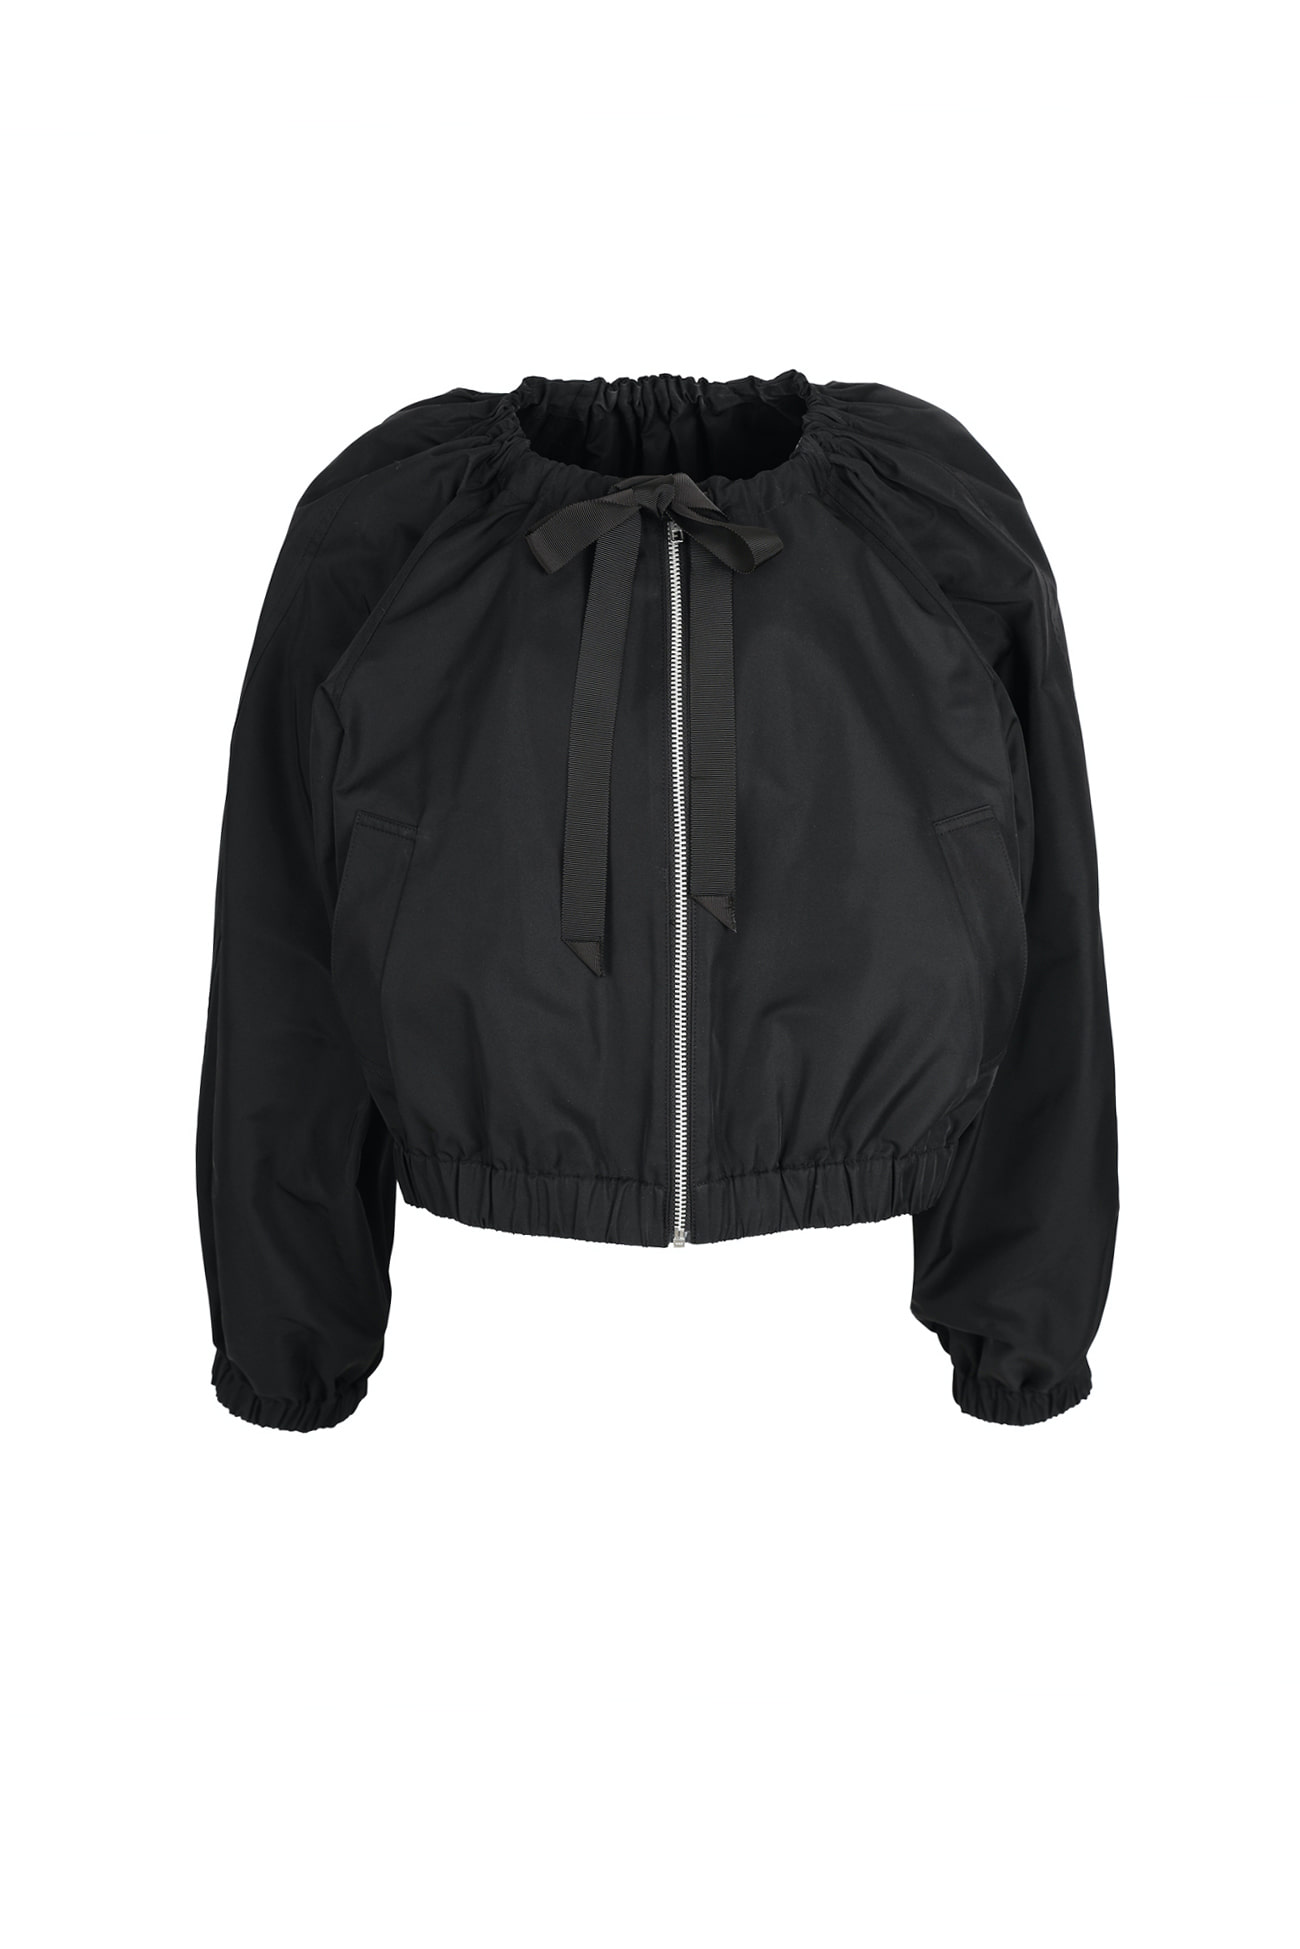 HIGH QUALITY LINE - Black classic bomber Jacket